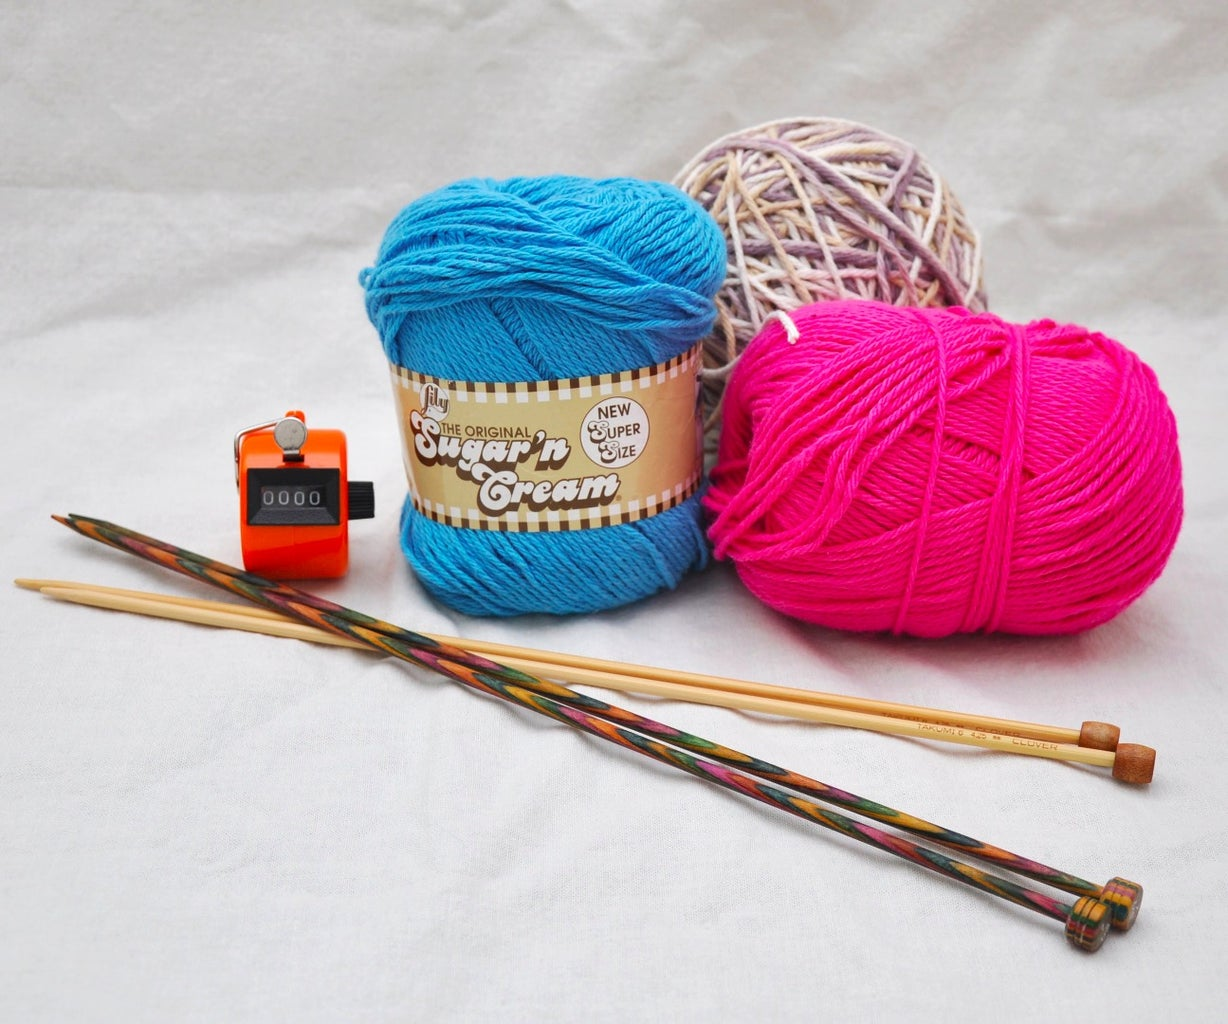 Supplies and Stitches